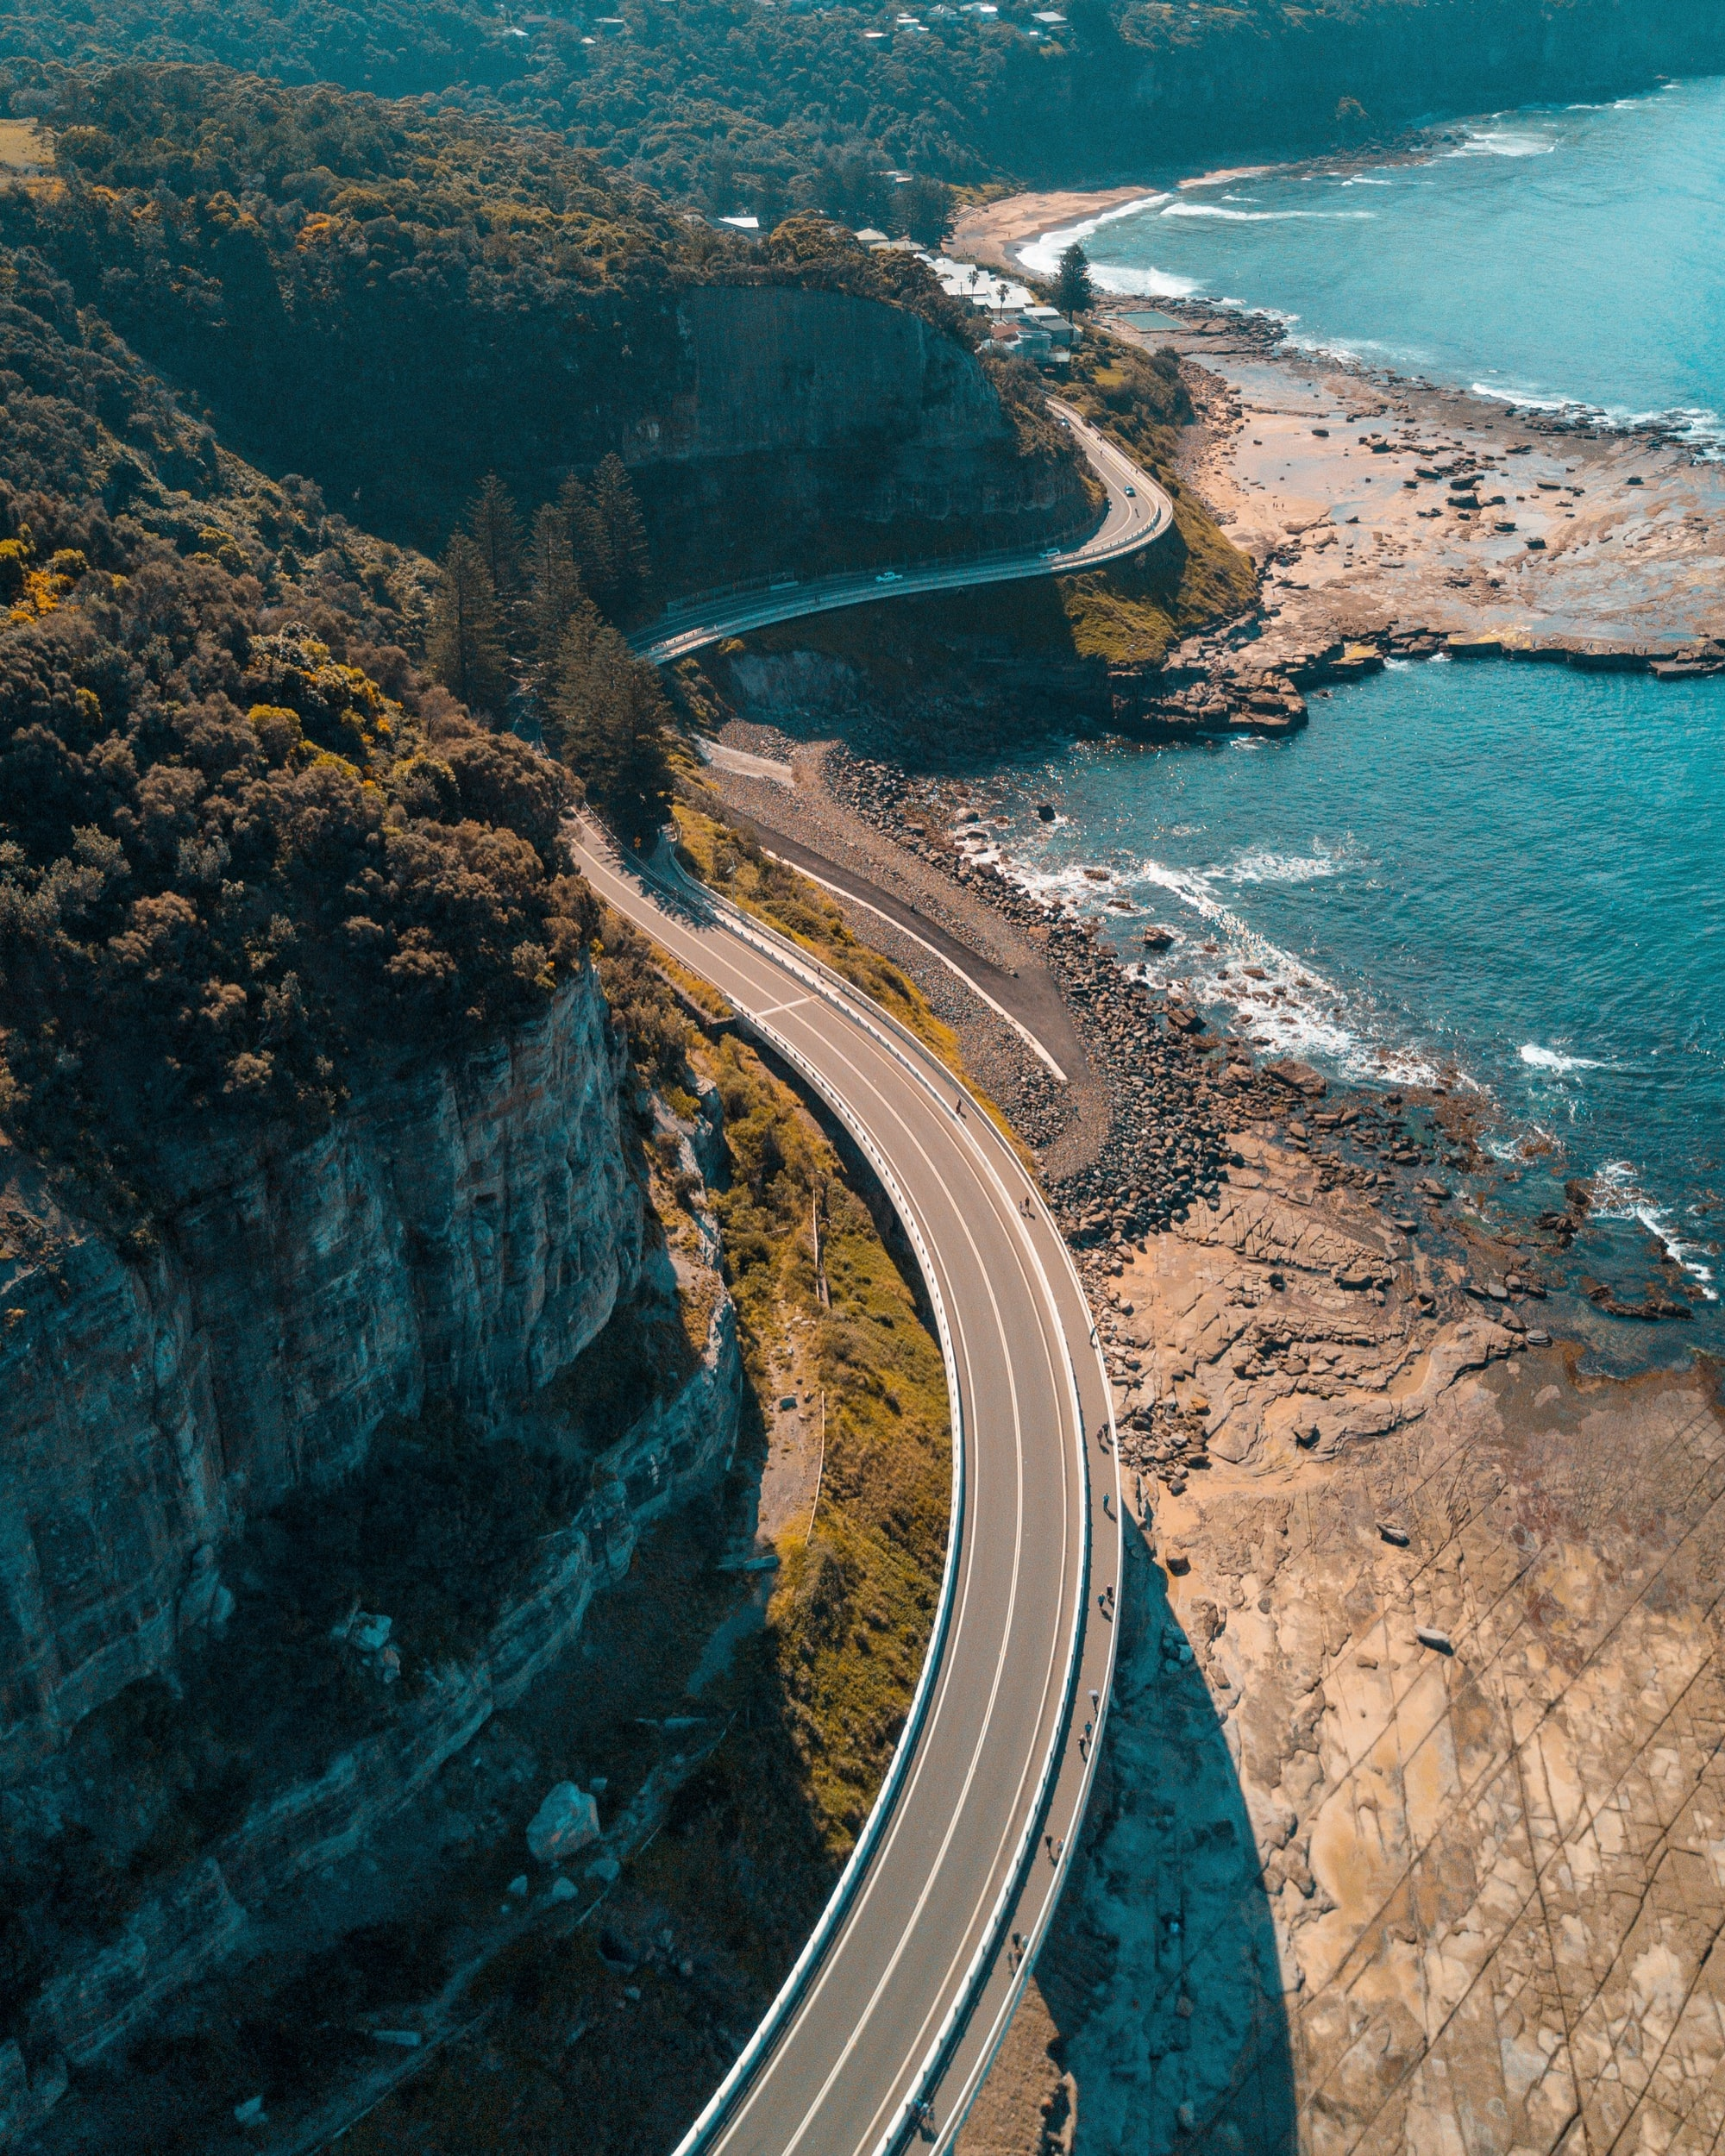 We broke through the open fence at the middle of the bridge to climb down under and find where the rocks met the sea. I launched the drone over a hundred metres up above the bridge to capture this crazy view. One of my favourite shots I've taken here.